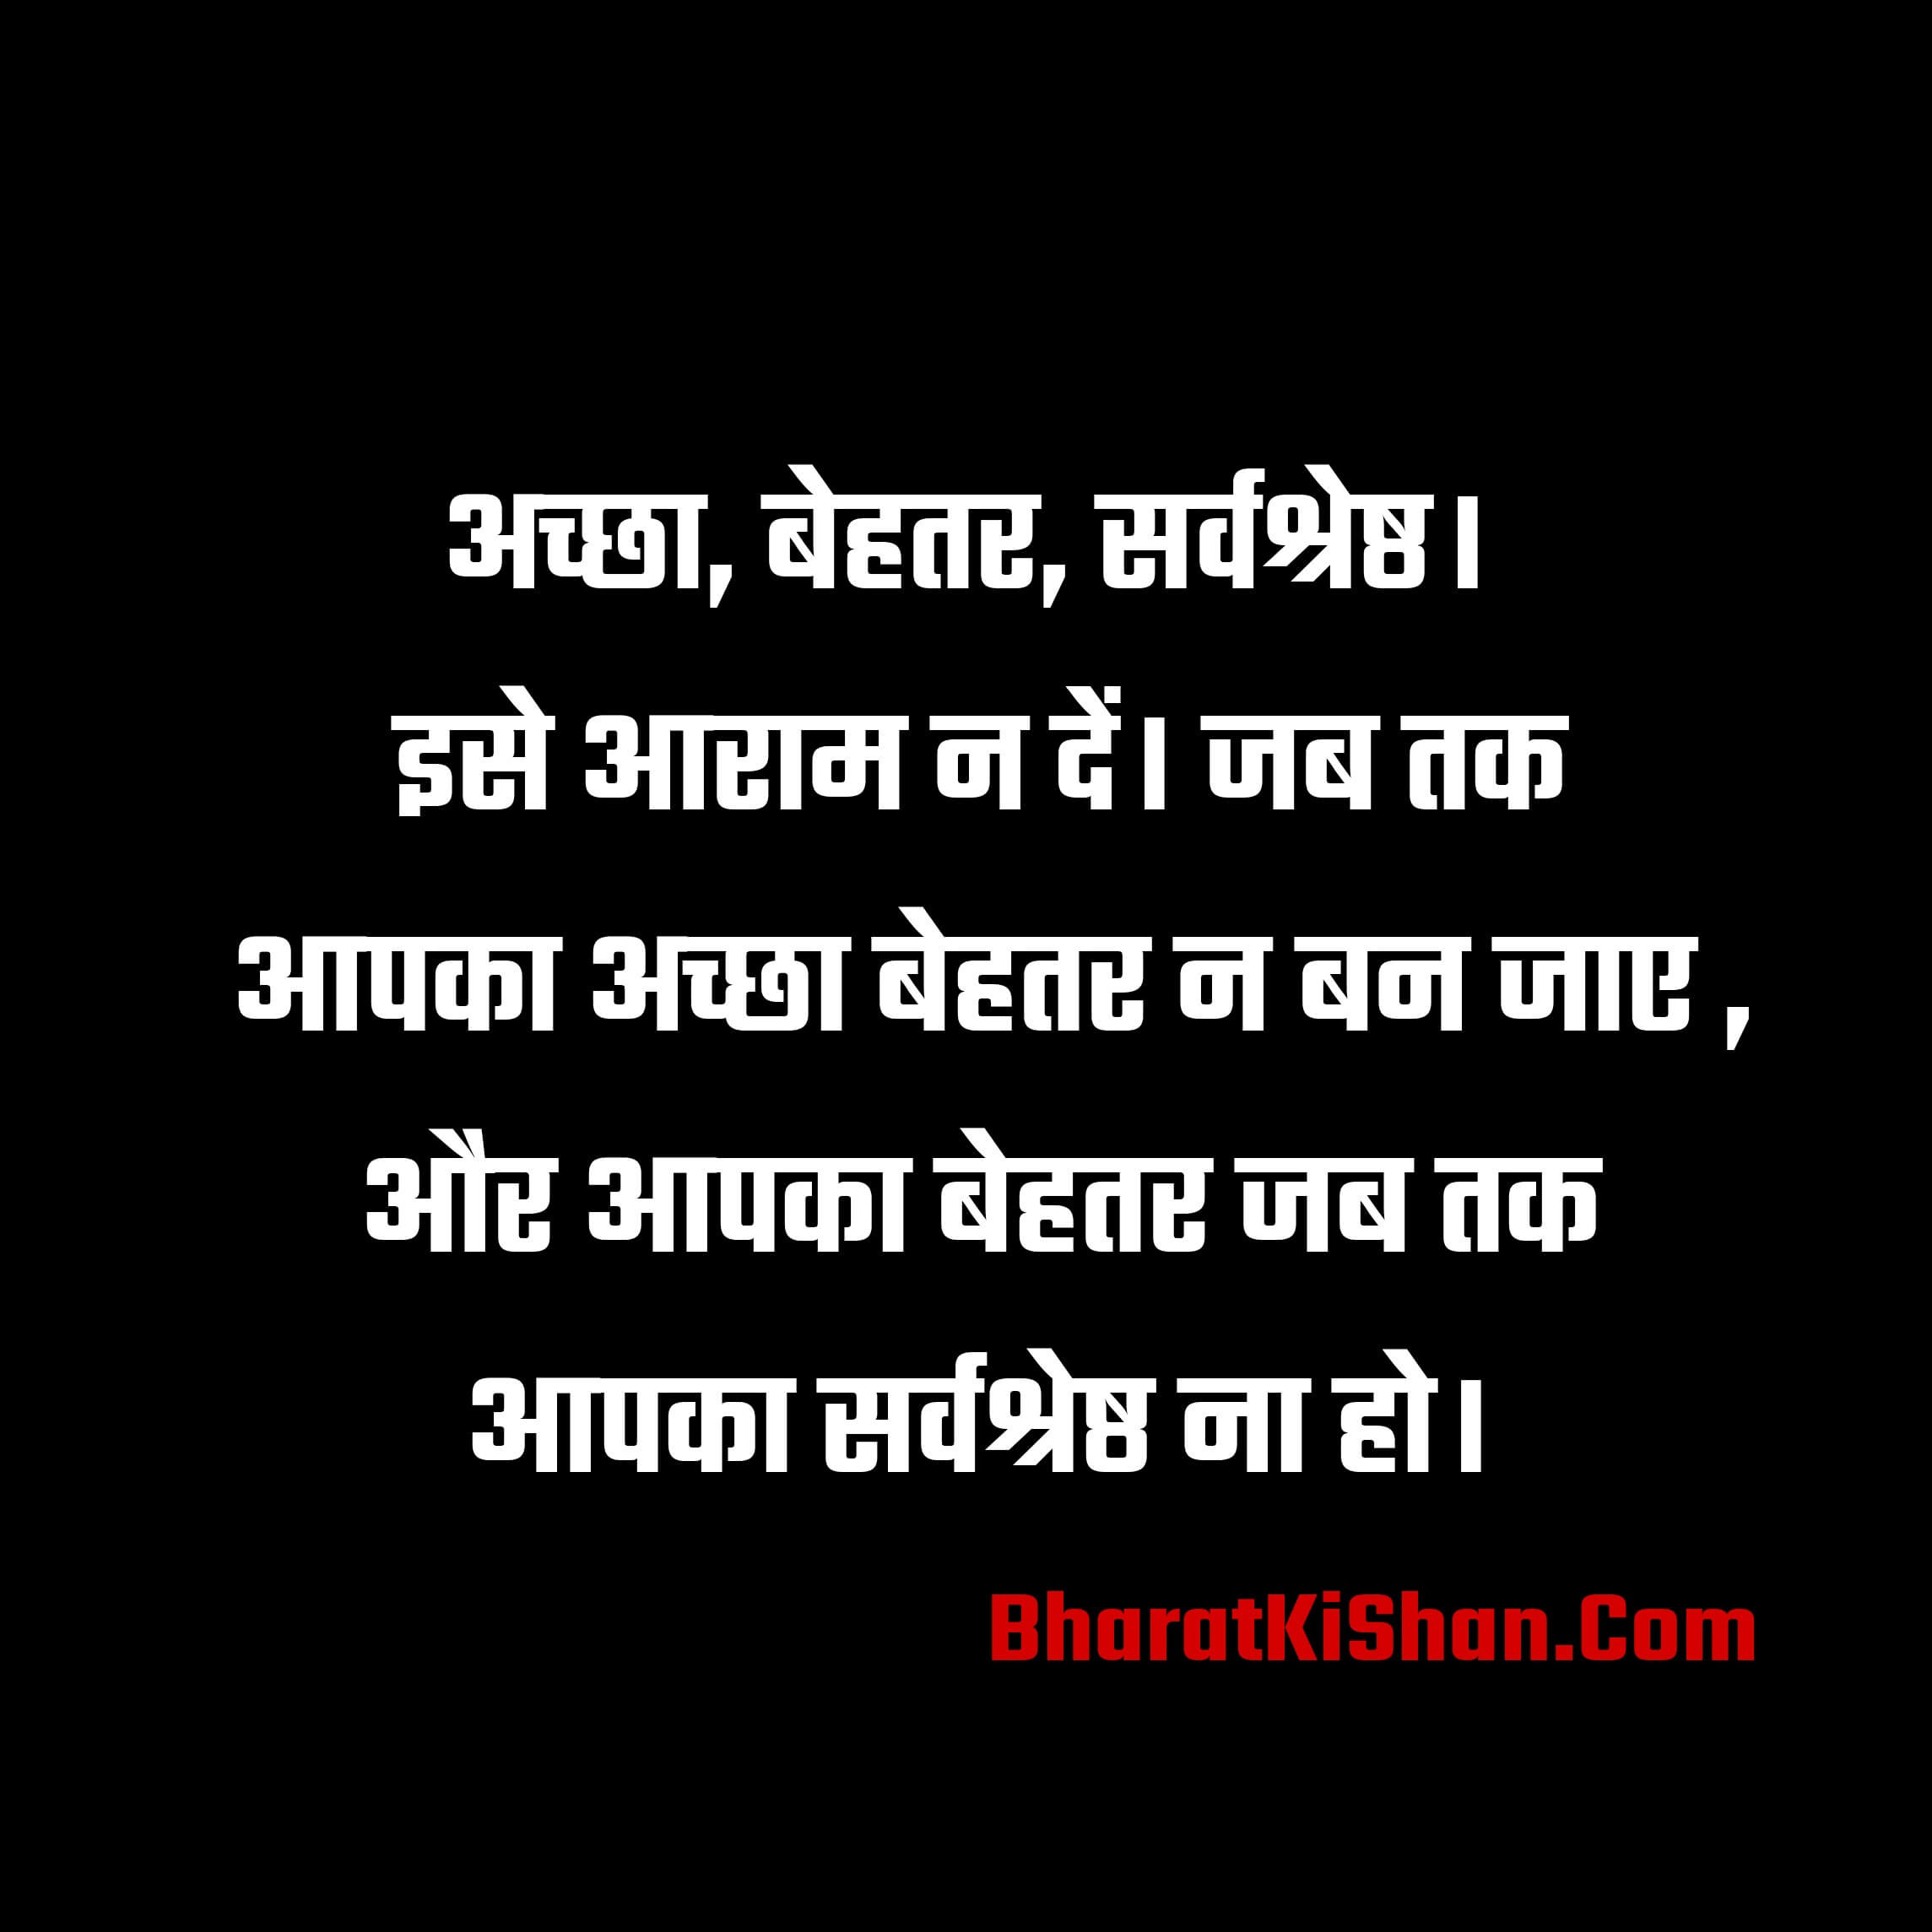 positive-quotes-in-hindi-Image